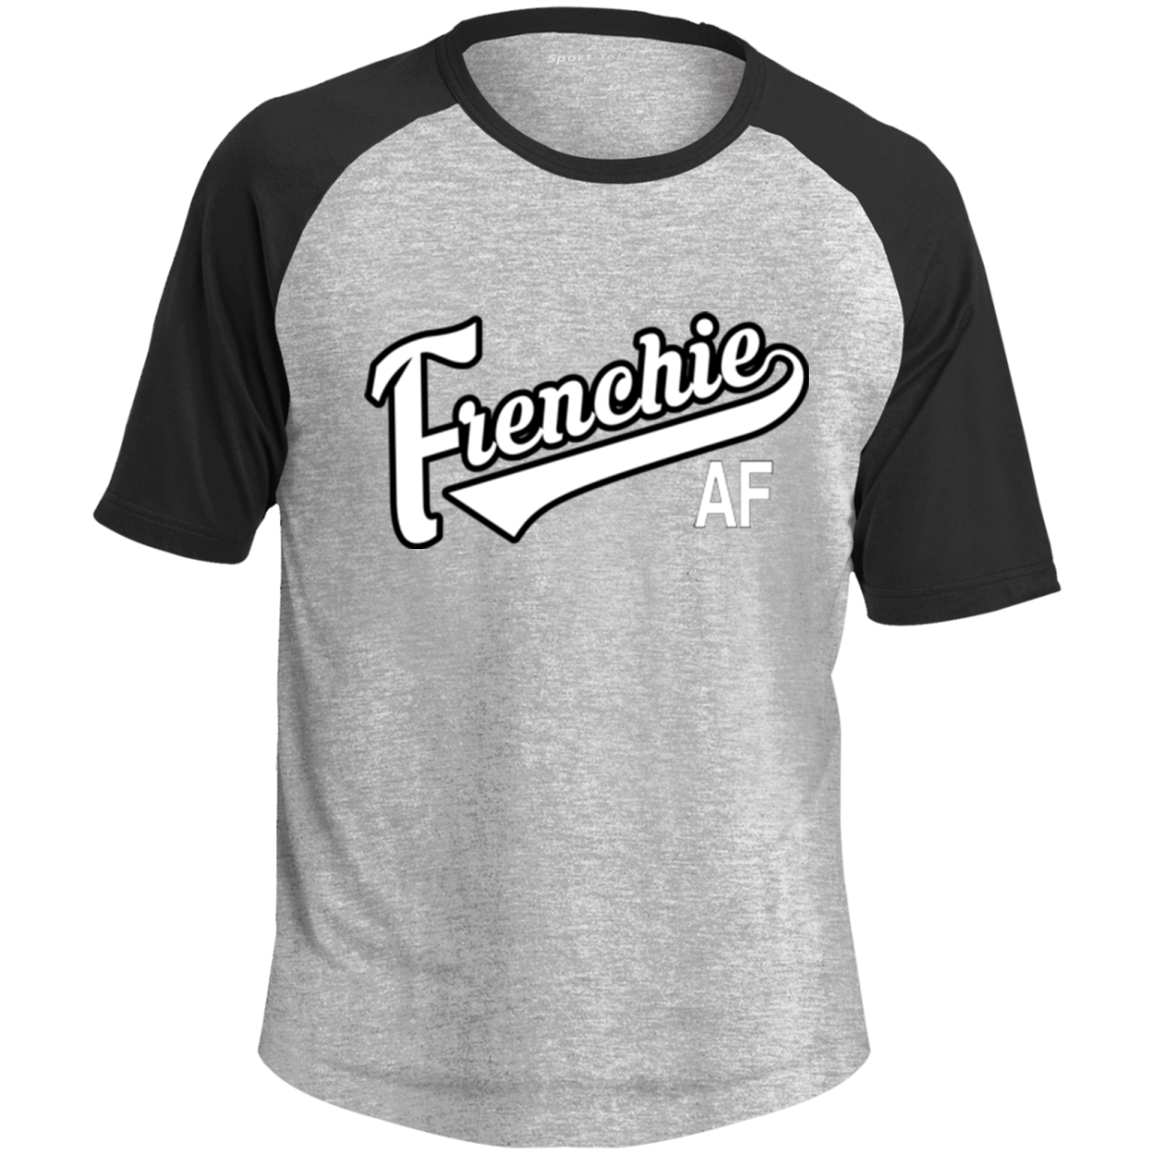 Frenchie AF Colorblock Raglan Jersey - Men's T-Shirts I Love Frenchie Bulldogs